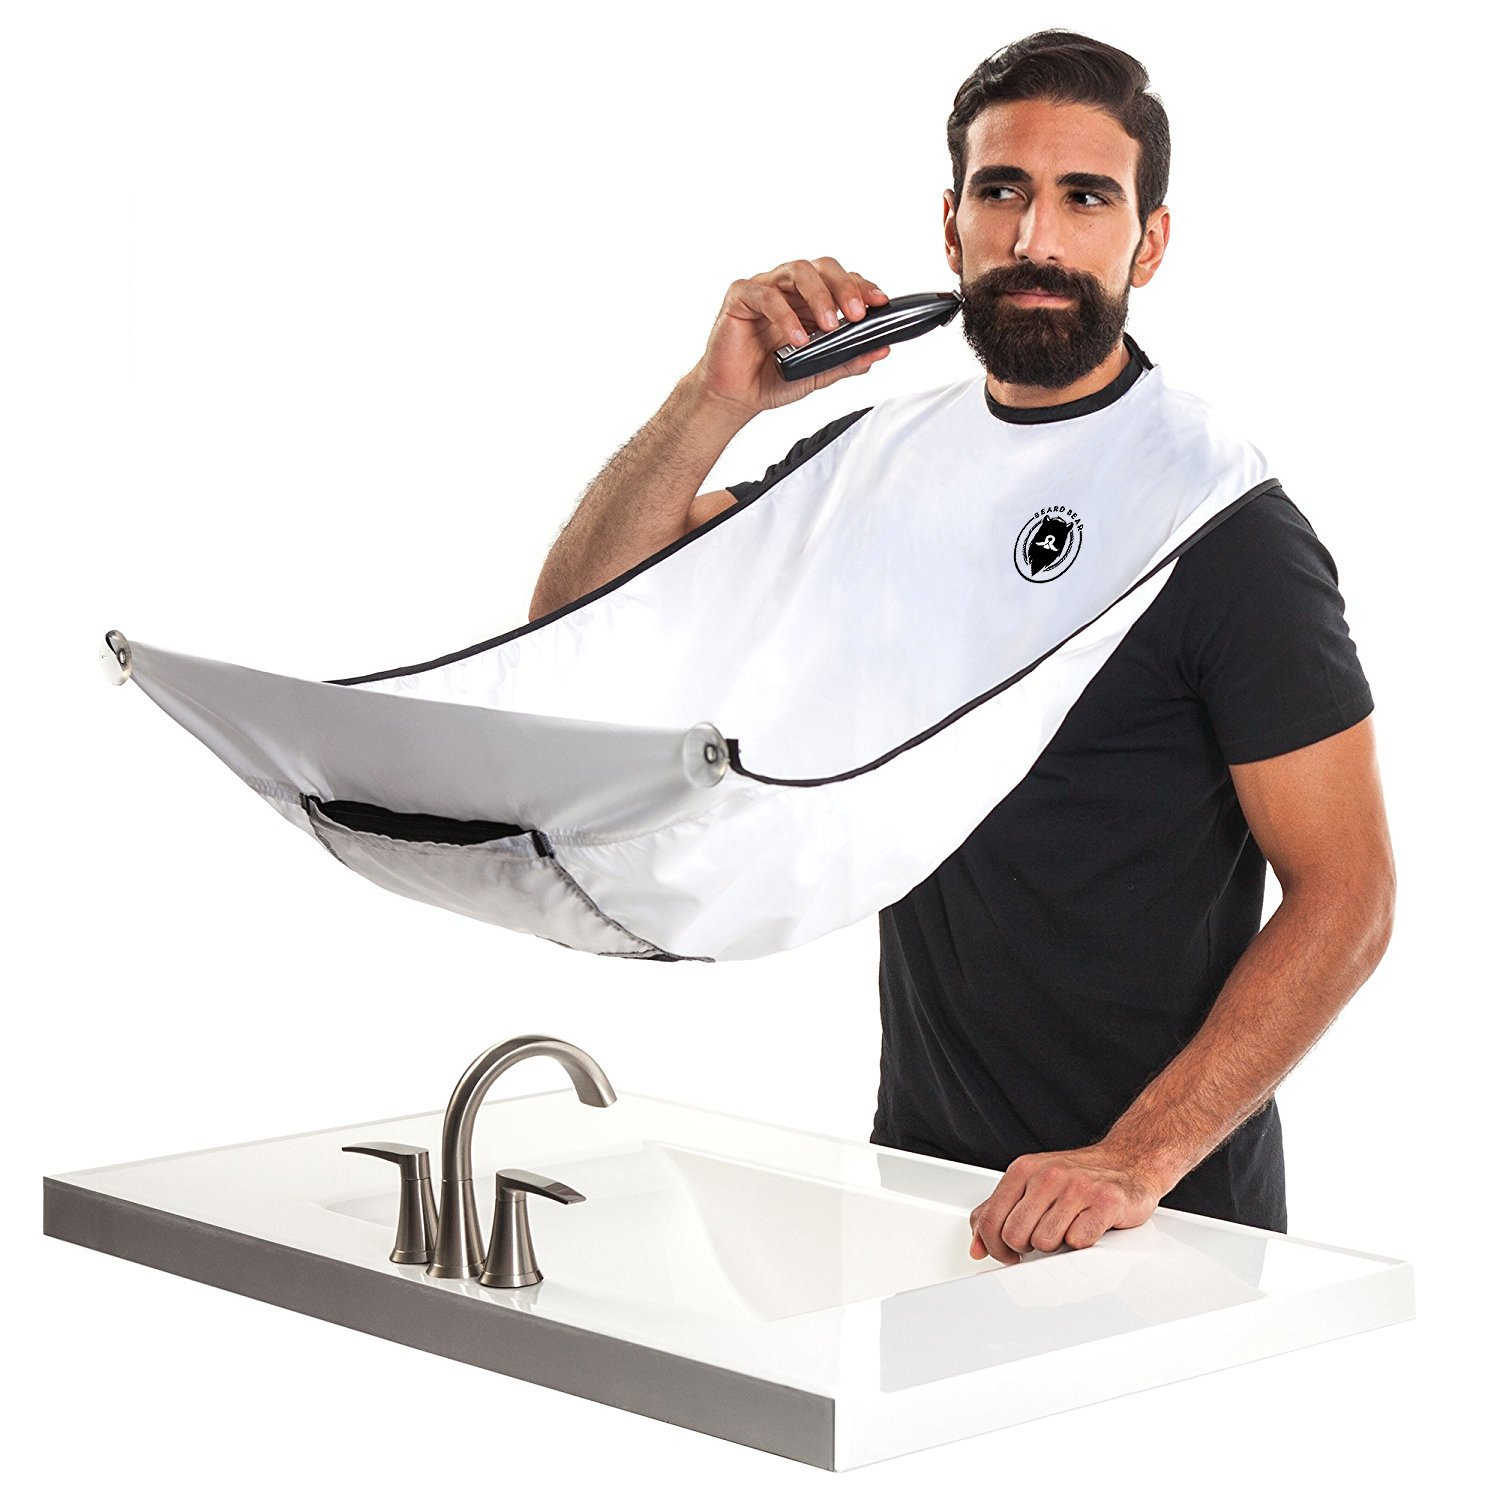 BEARD BEAR Beard Bib Apron - Premium Apron for Trimming & Cutting Your Beard Without Mess - Men's Shaving Grooming Catcher Cape - Great Gift Idea for Men, White